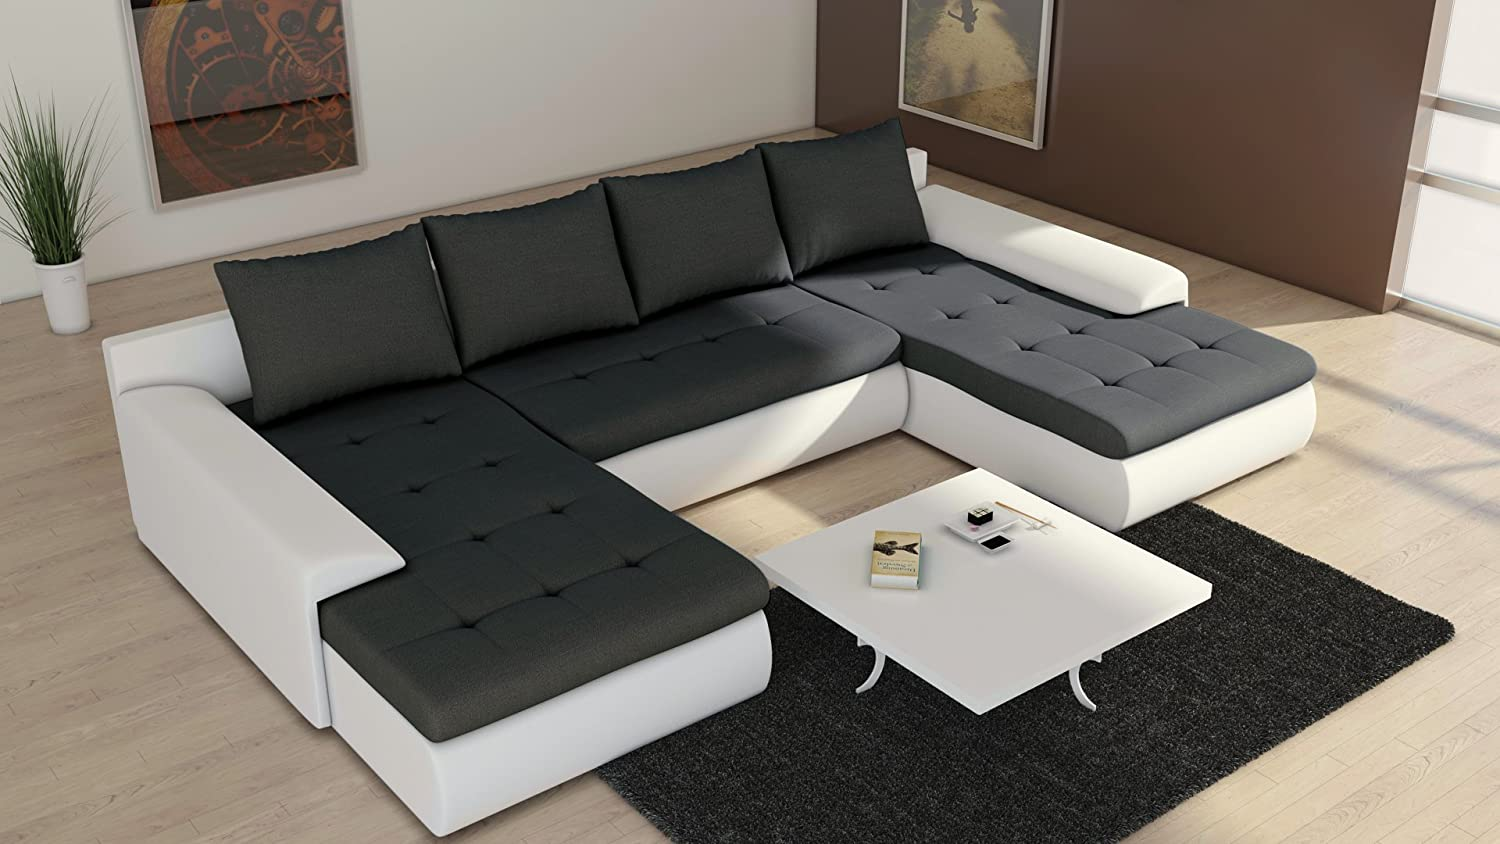 Couch u form schlaffunktion  Sofa Couchgarnitur Couch Sofagarnitur FUTURE 2.1 U Polstergarnitur ...